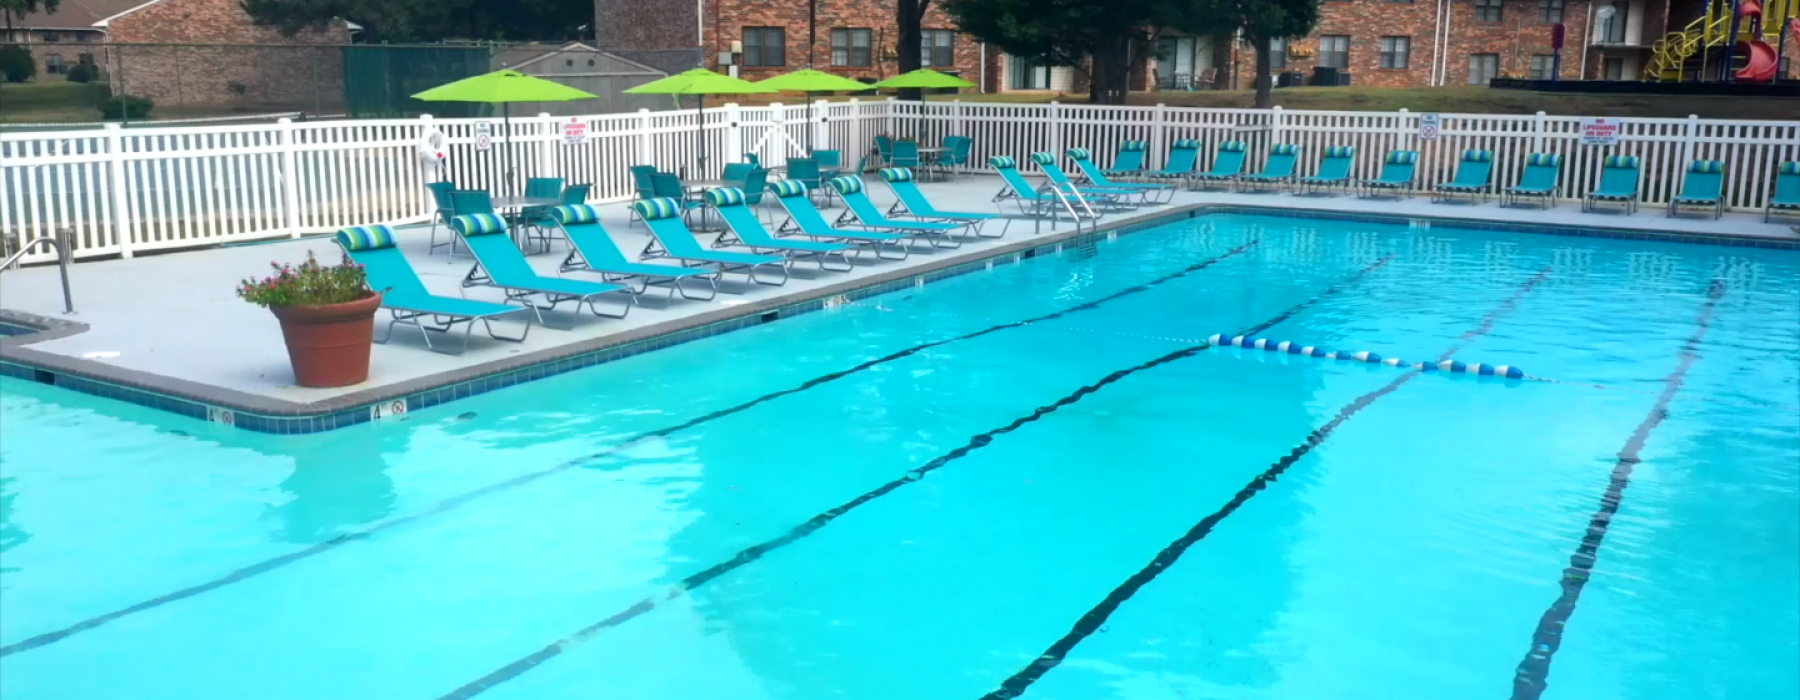 Olympic sized swimming pool with lounge chairs on the deck